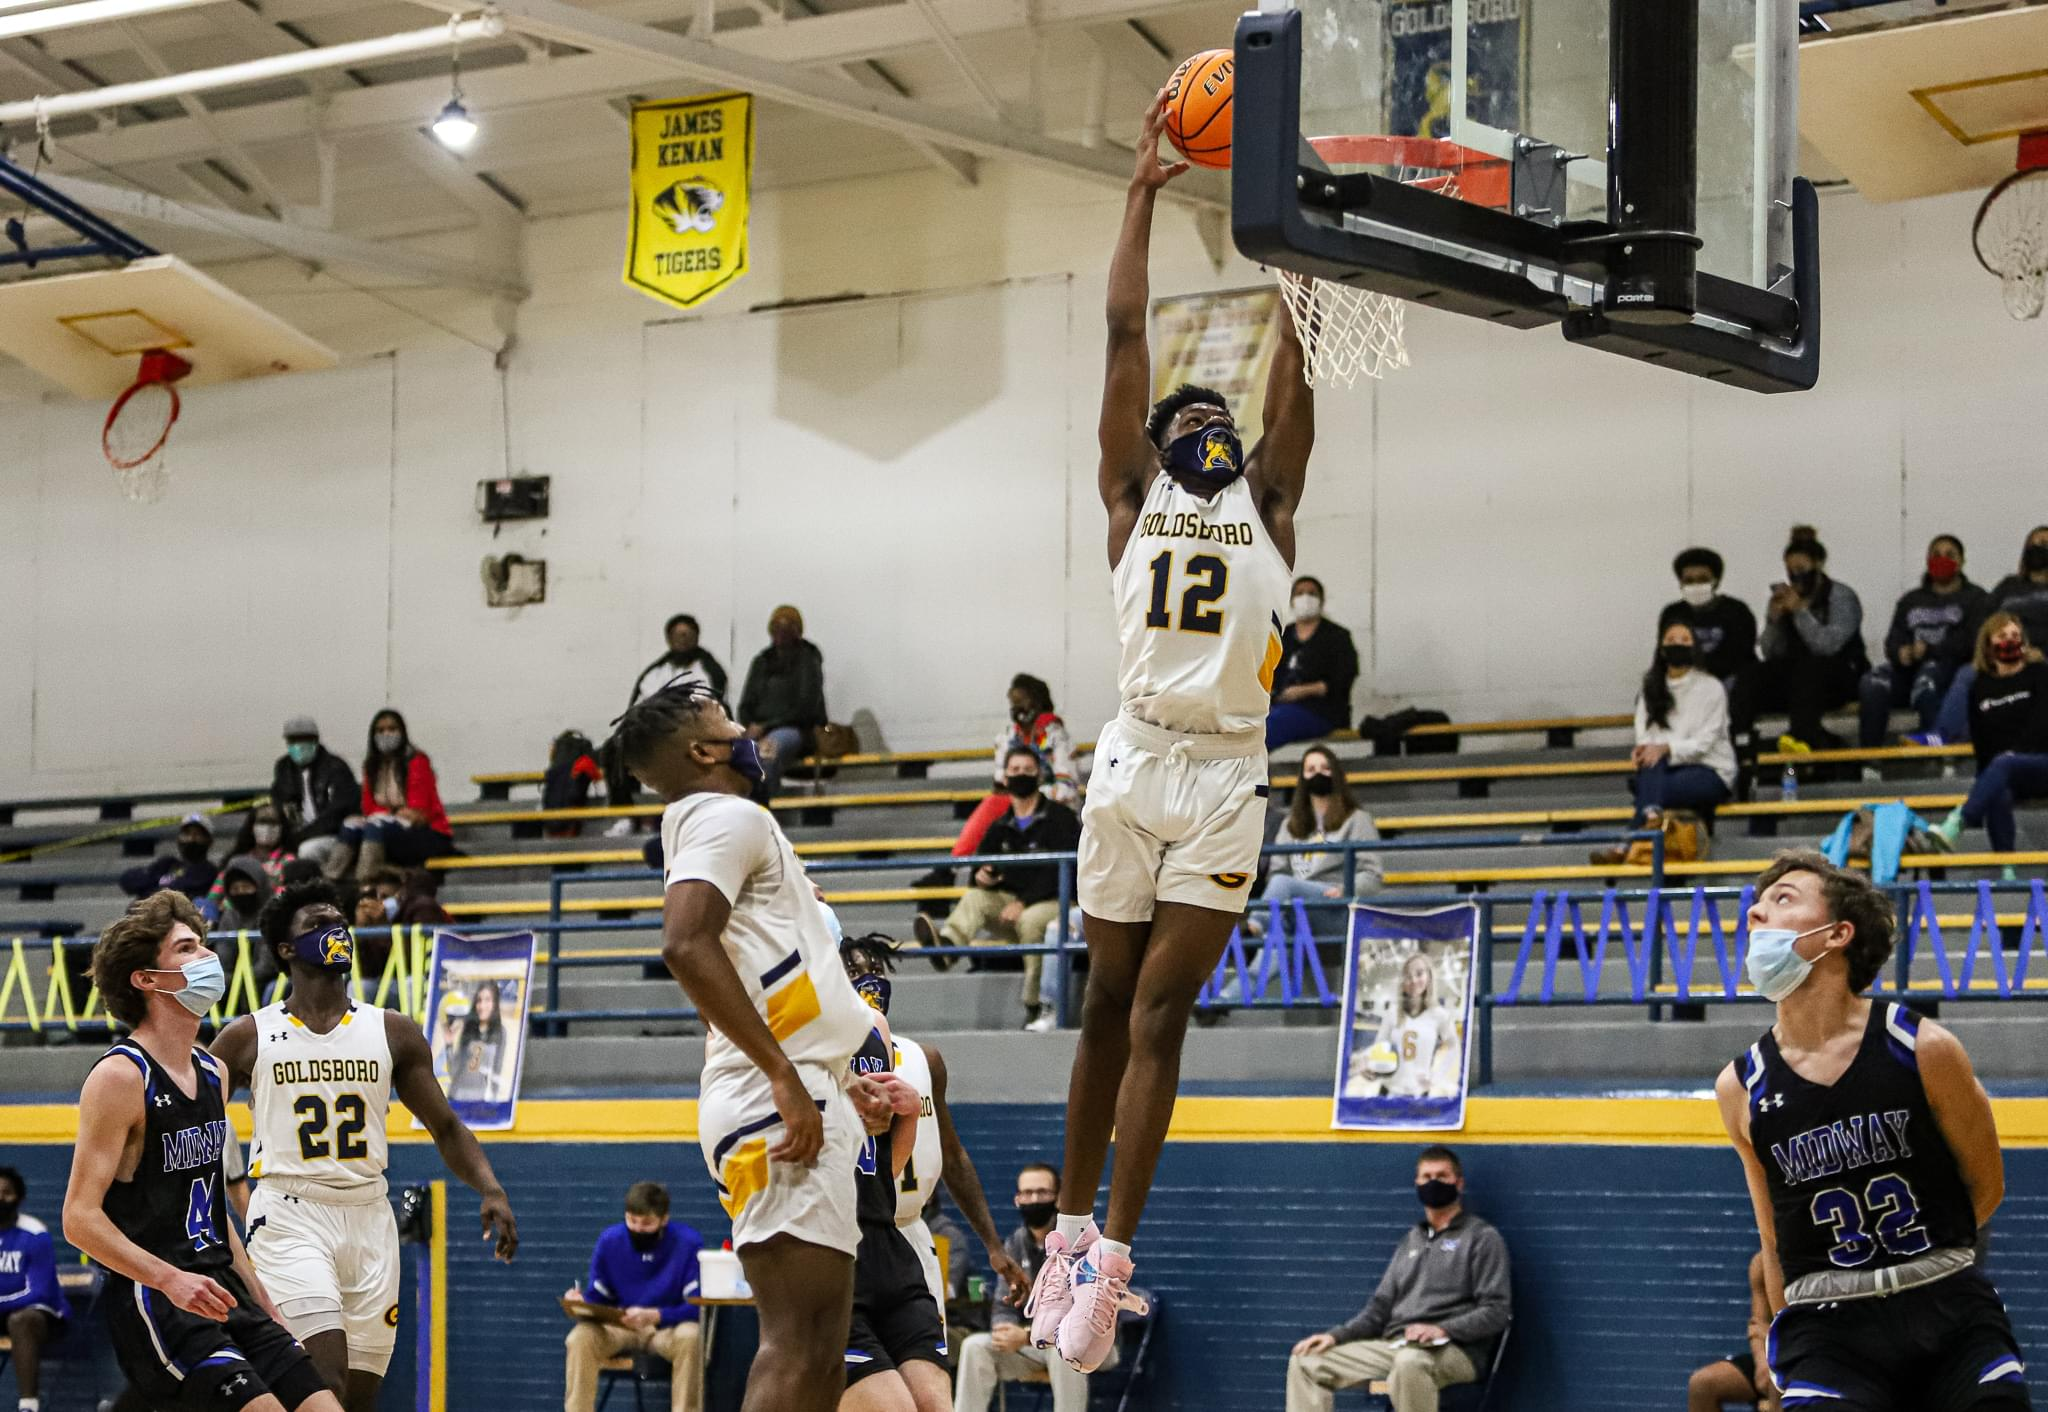 Boys Basketball: Goldsboro Rolls Past Midway (PHOTO GALLERY)